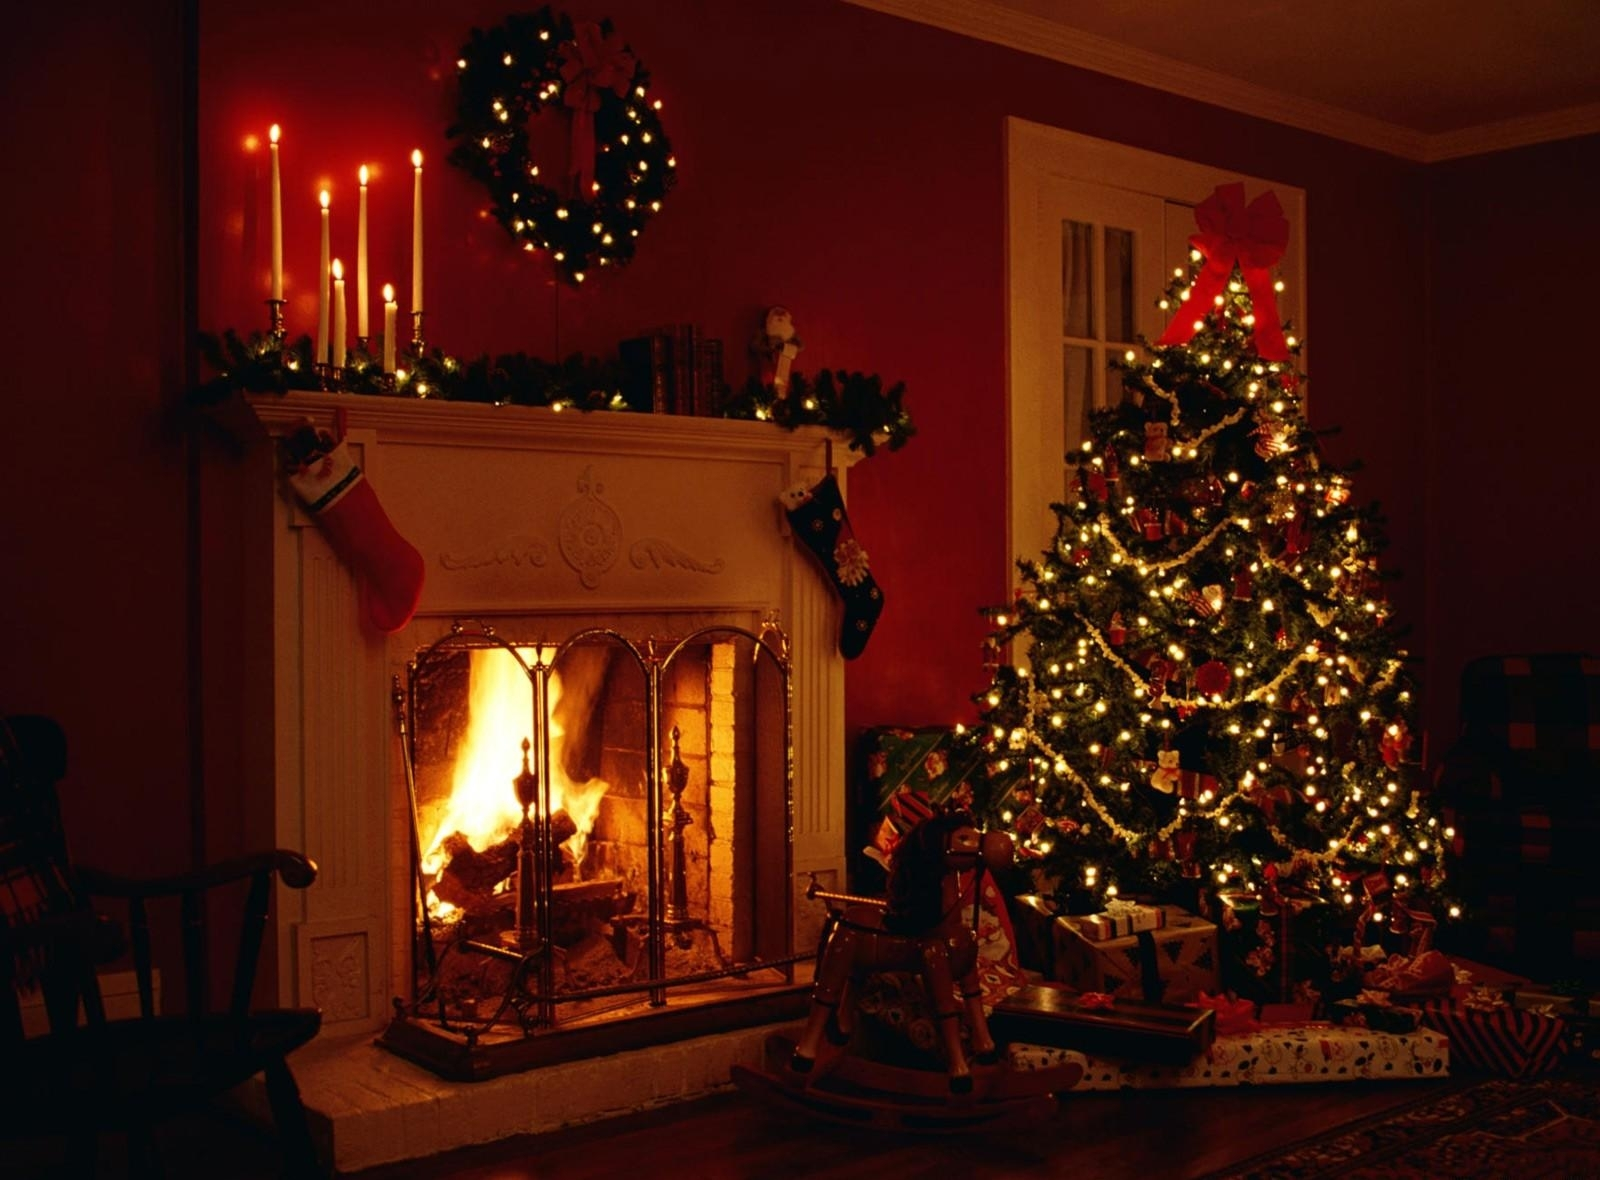 Download Christmas Fireplace Wallpaper Gallery